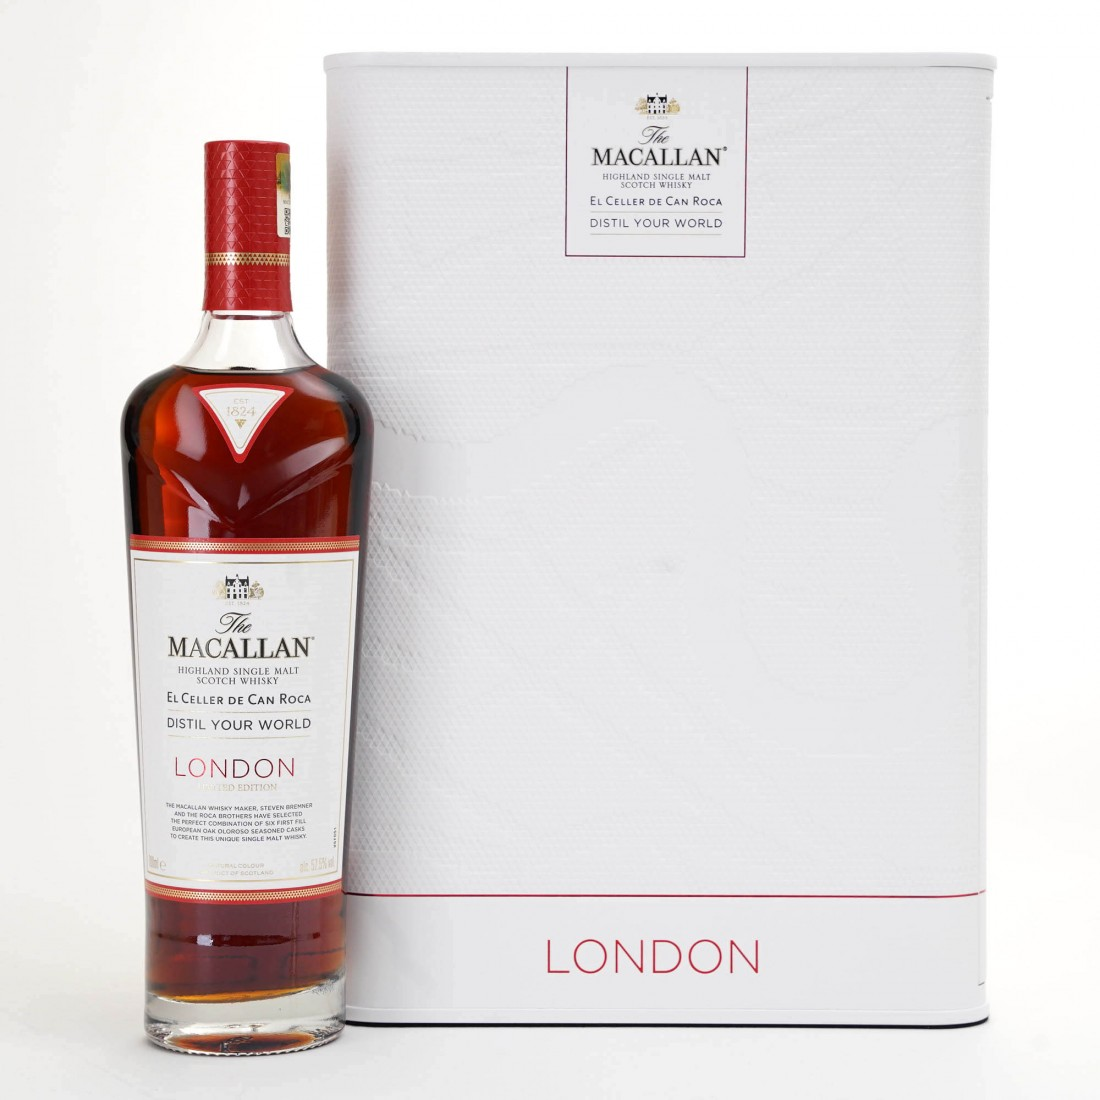 Macallan Distil Your World London